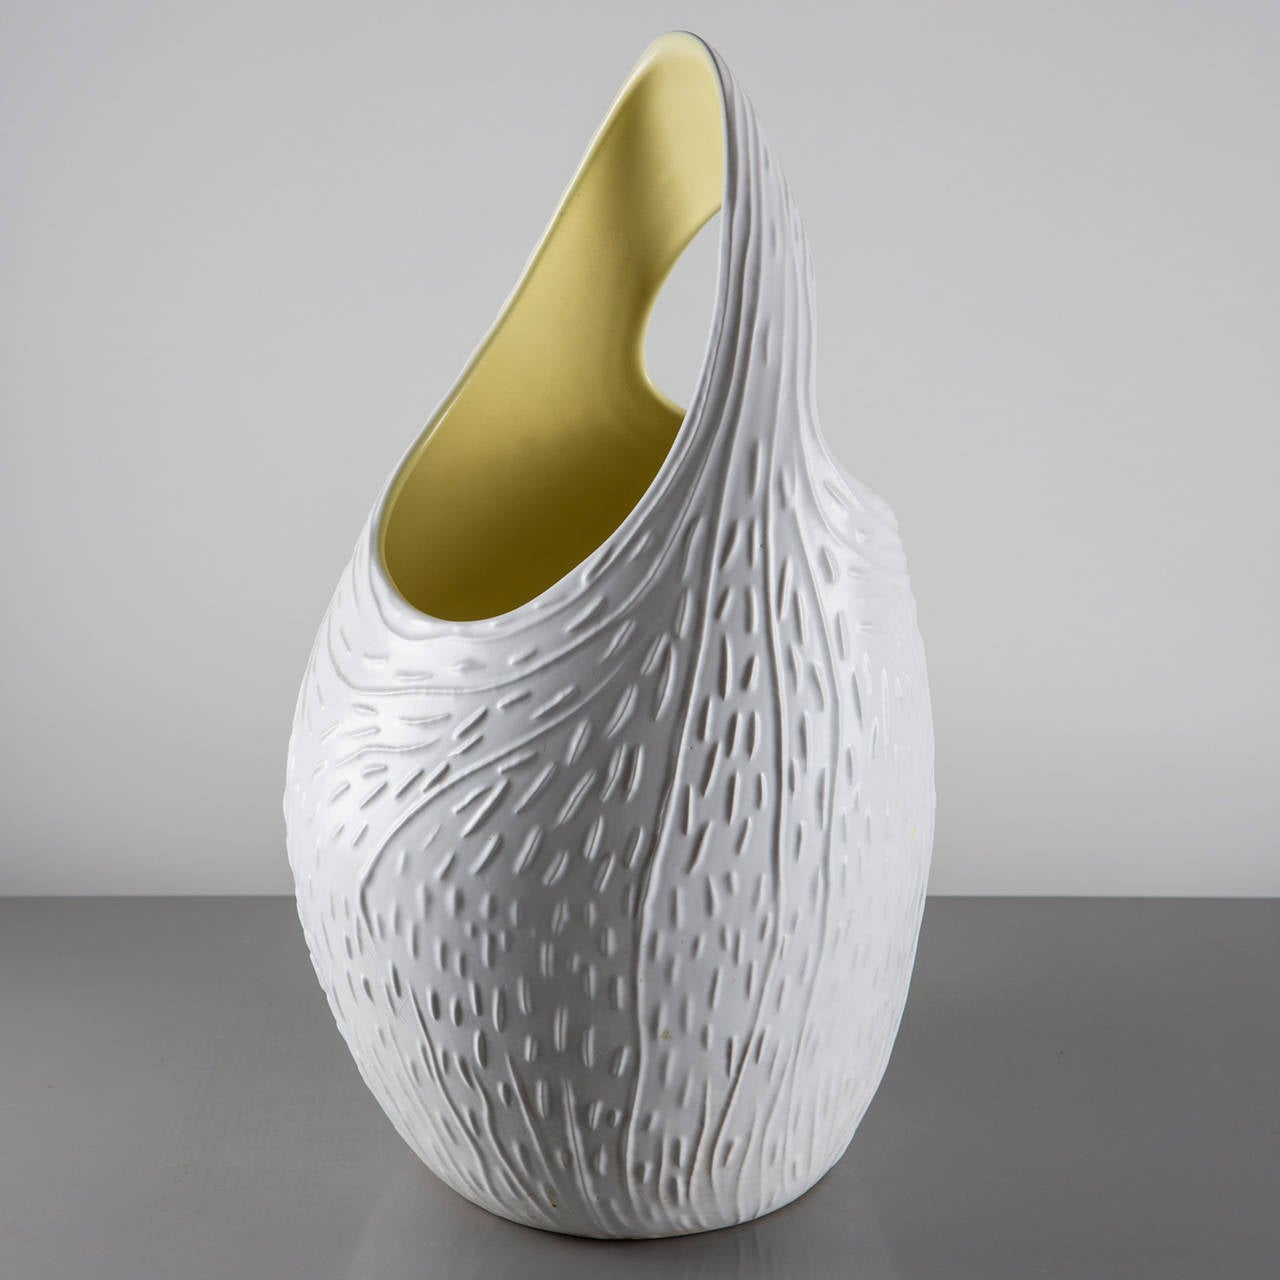 Umbrella Stand Model C300 by Antonia Campi for S.C.I. Laveno 2